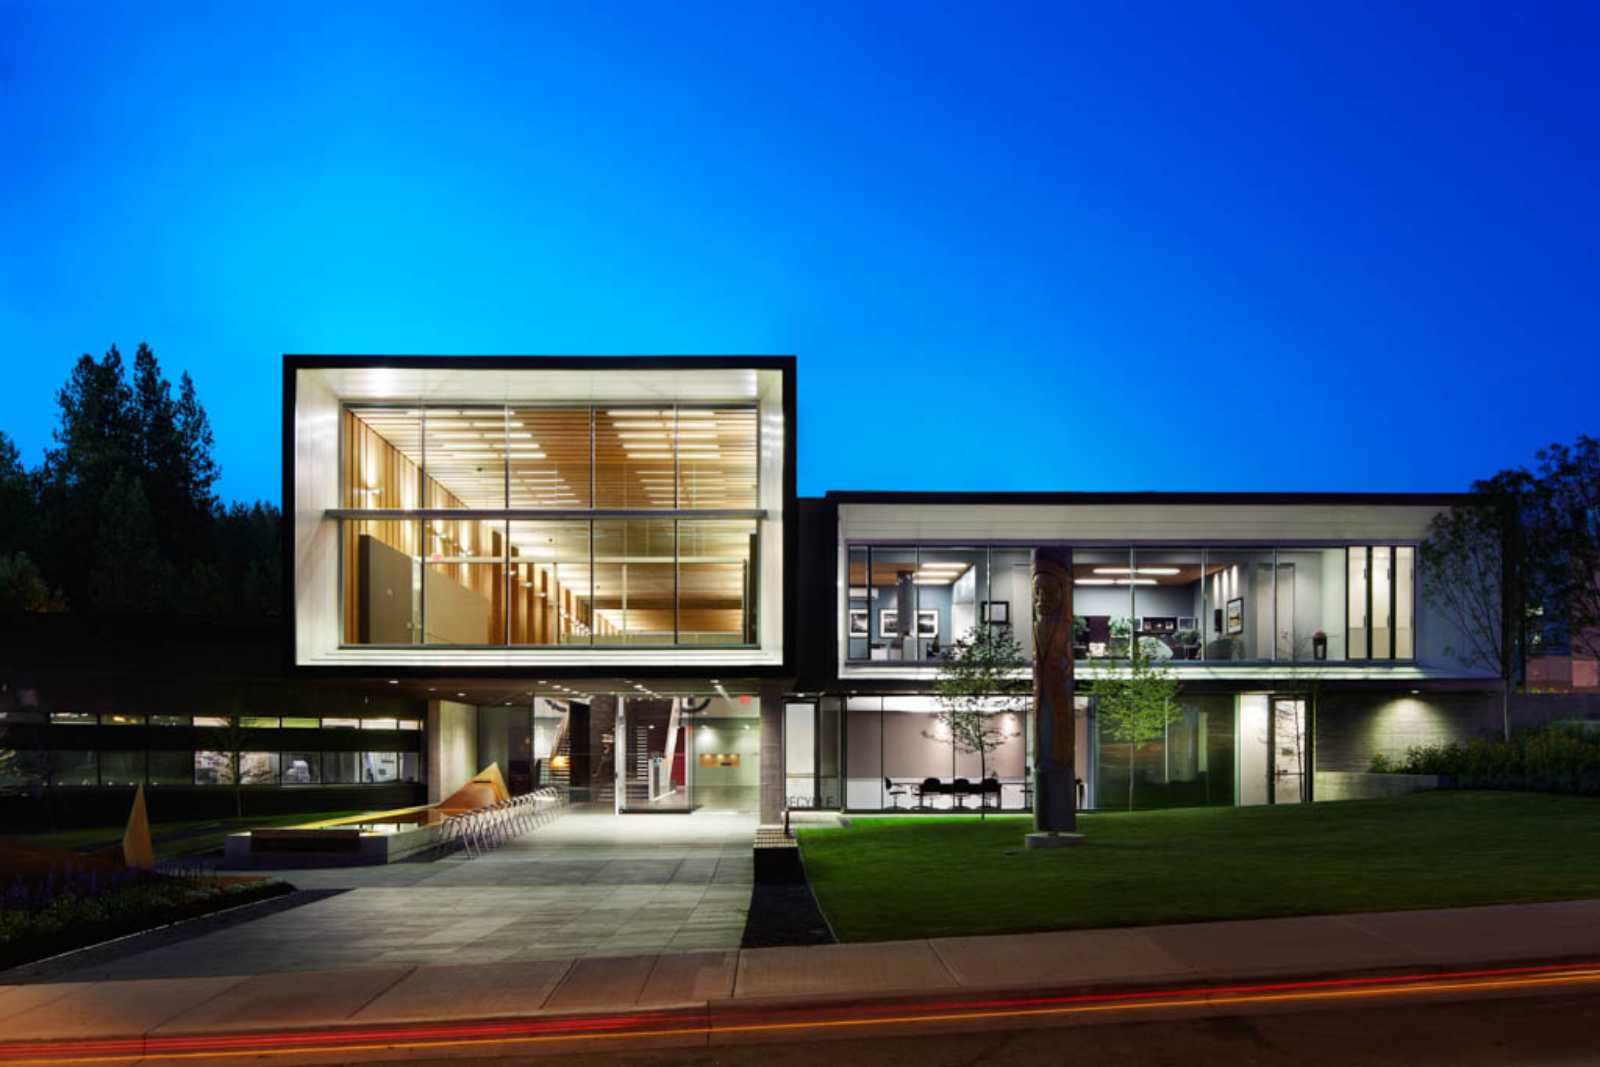 NORTH VANCOUVER CITY HALL BY MGB ARCHITECTURE